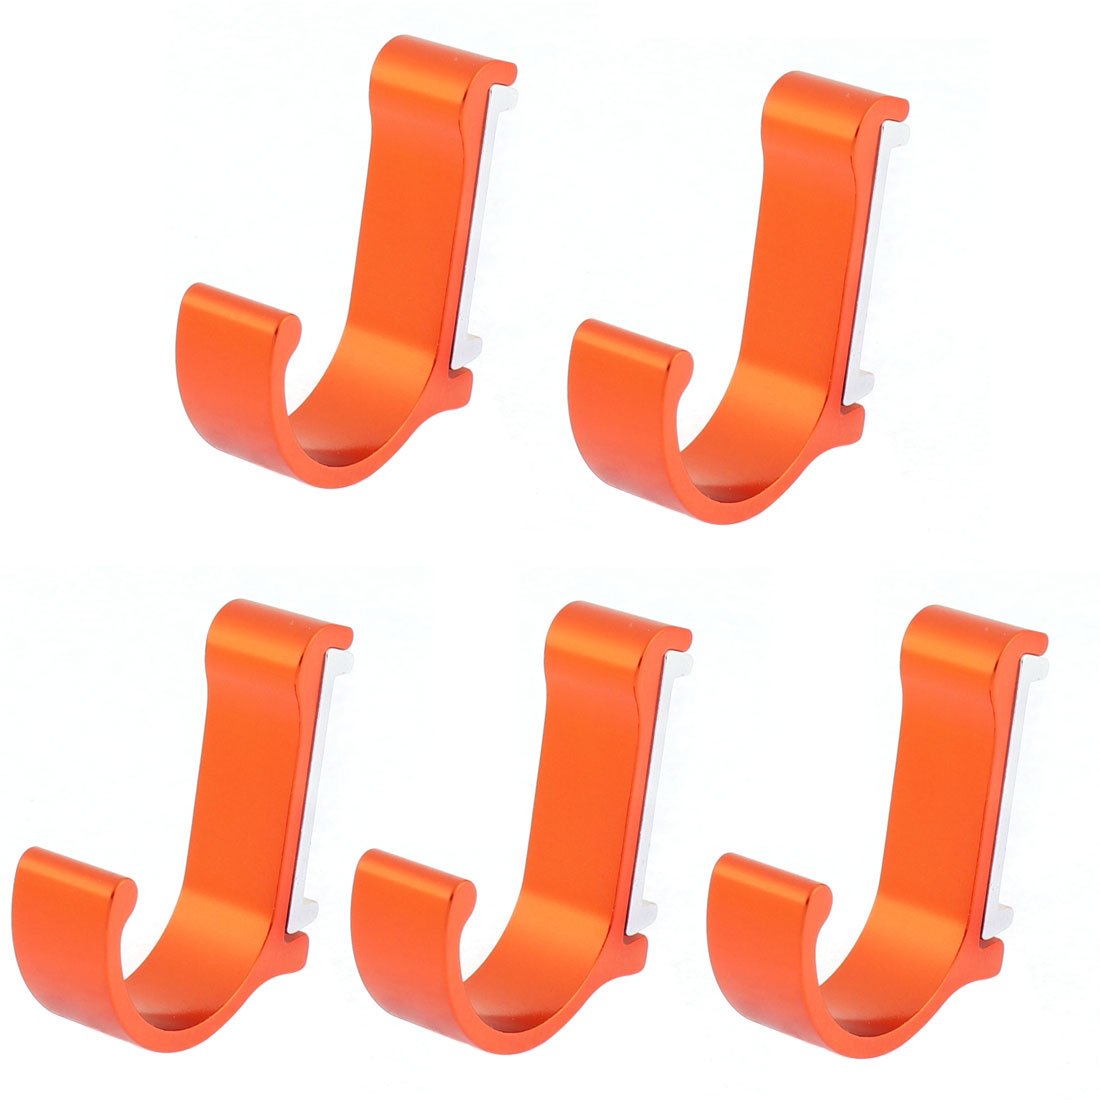 5pcs Utility Modern Wall Hooks for Coats Garment Bags Hanging Orange